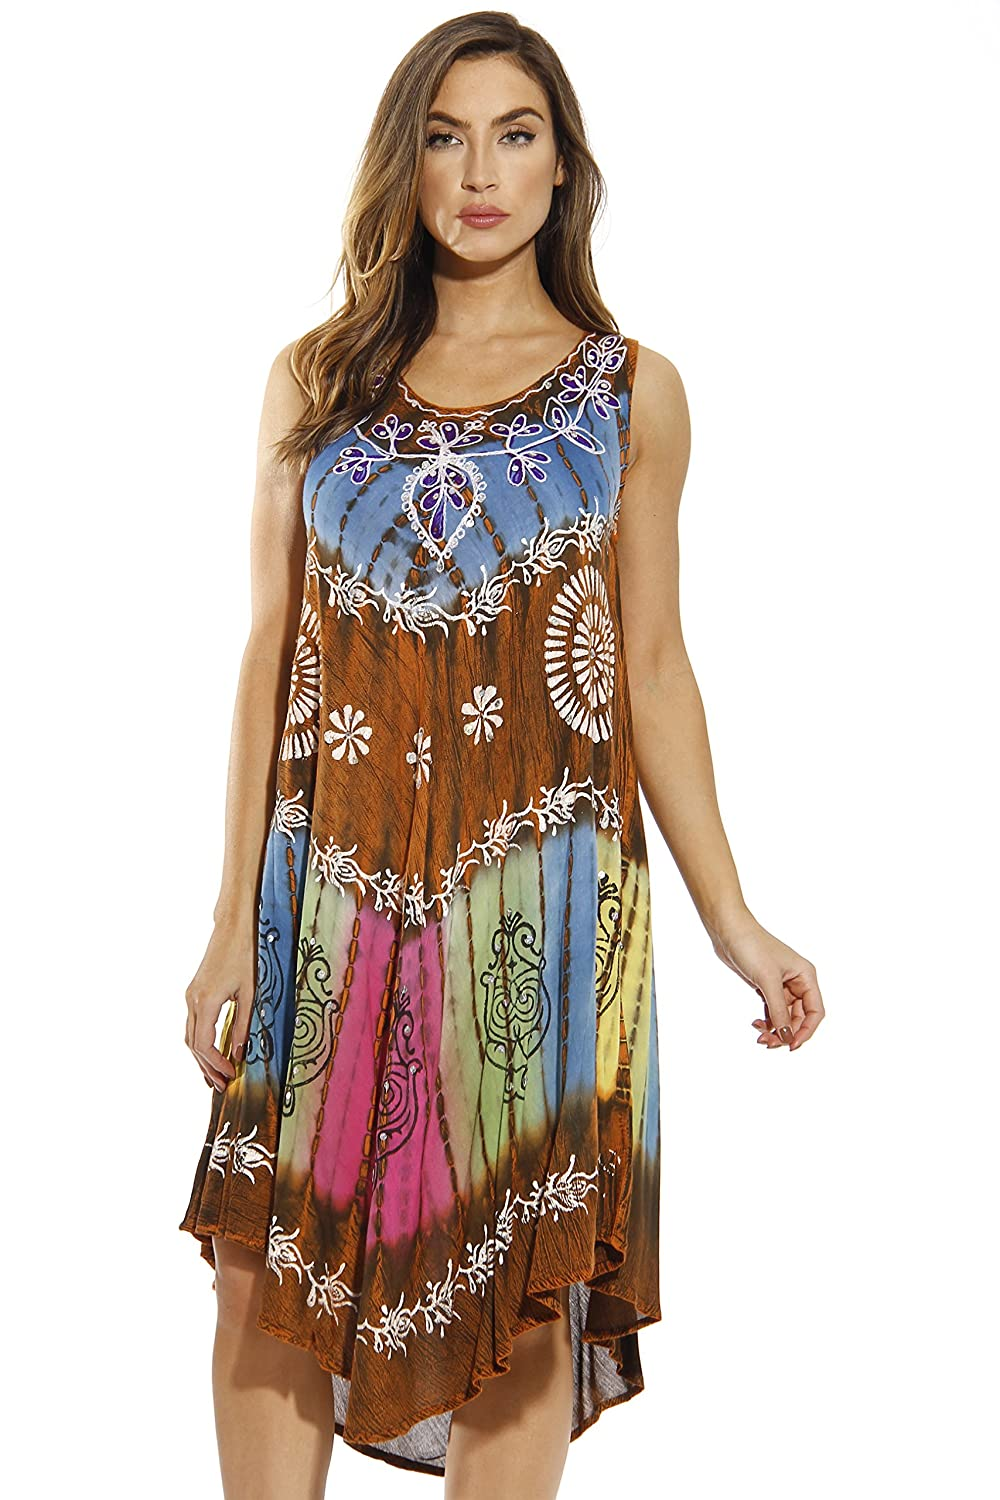 03514cba3d0fa Riviera Sun Summer Dresses Tie Dye Embroidered Beach Swimsuit Cover Up at  Amazon Women's Clothing store: